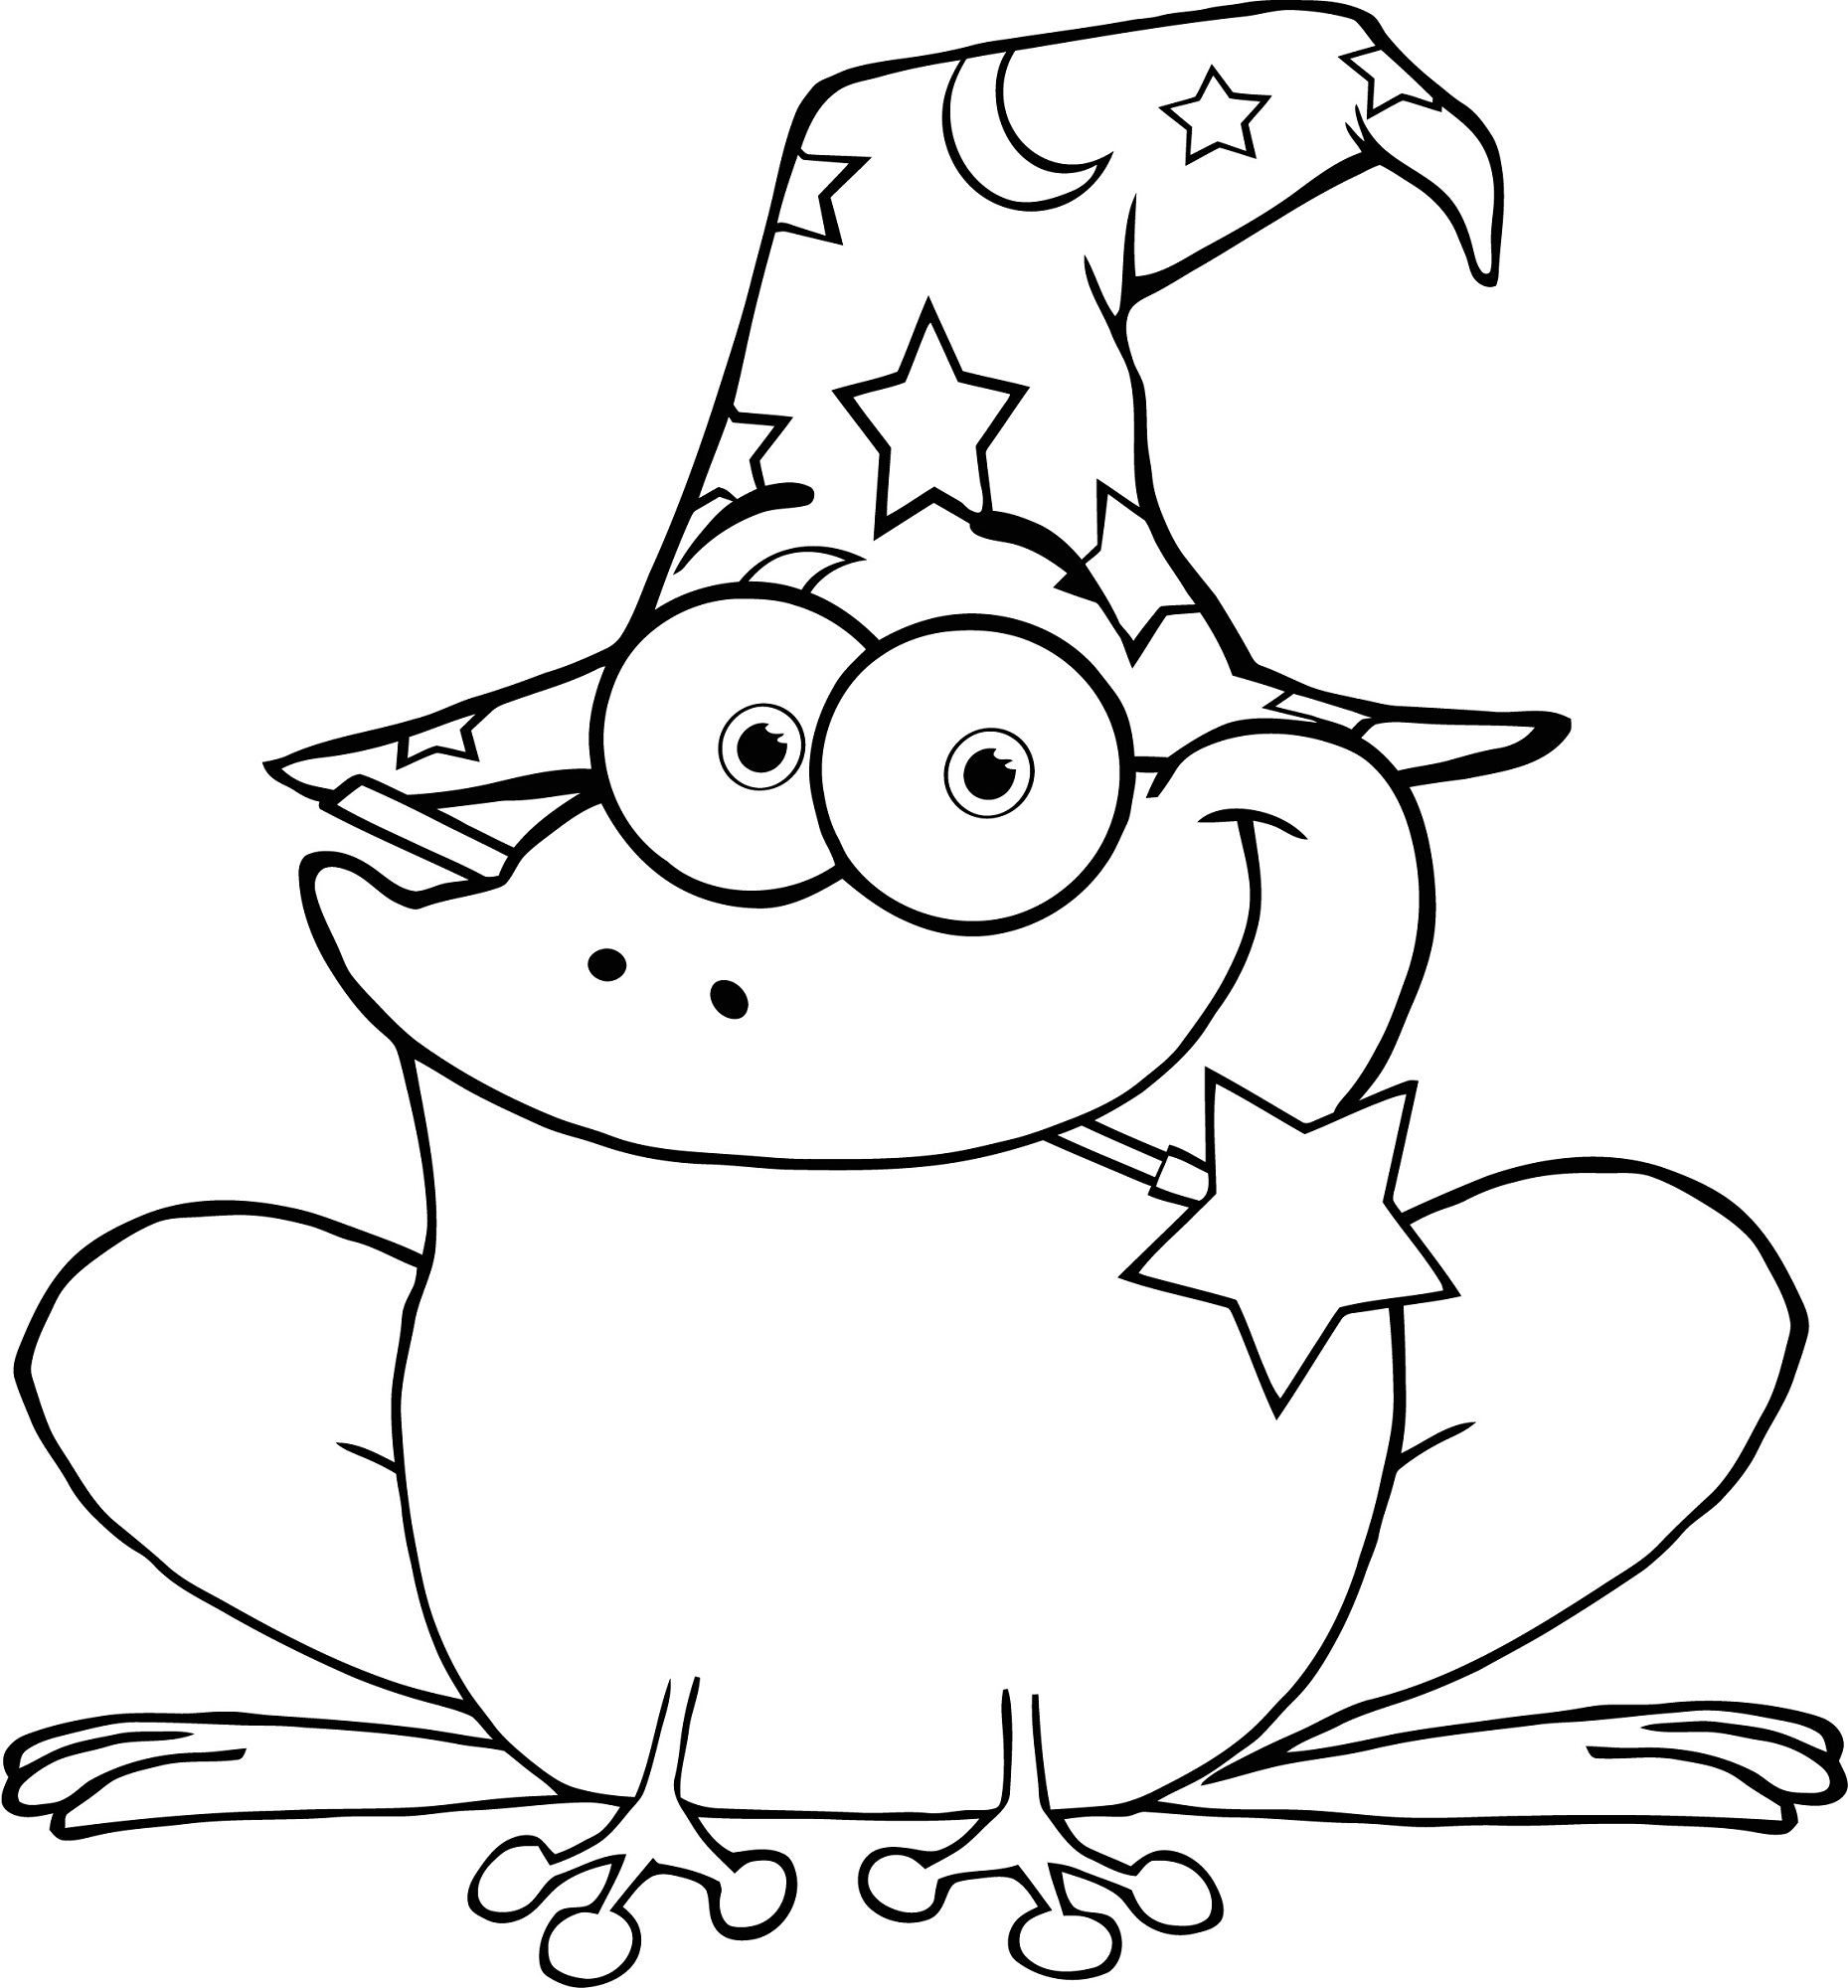 frog coloring sheets free frog coloring pages sheets frog coloring